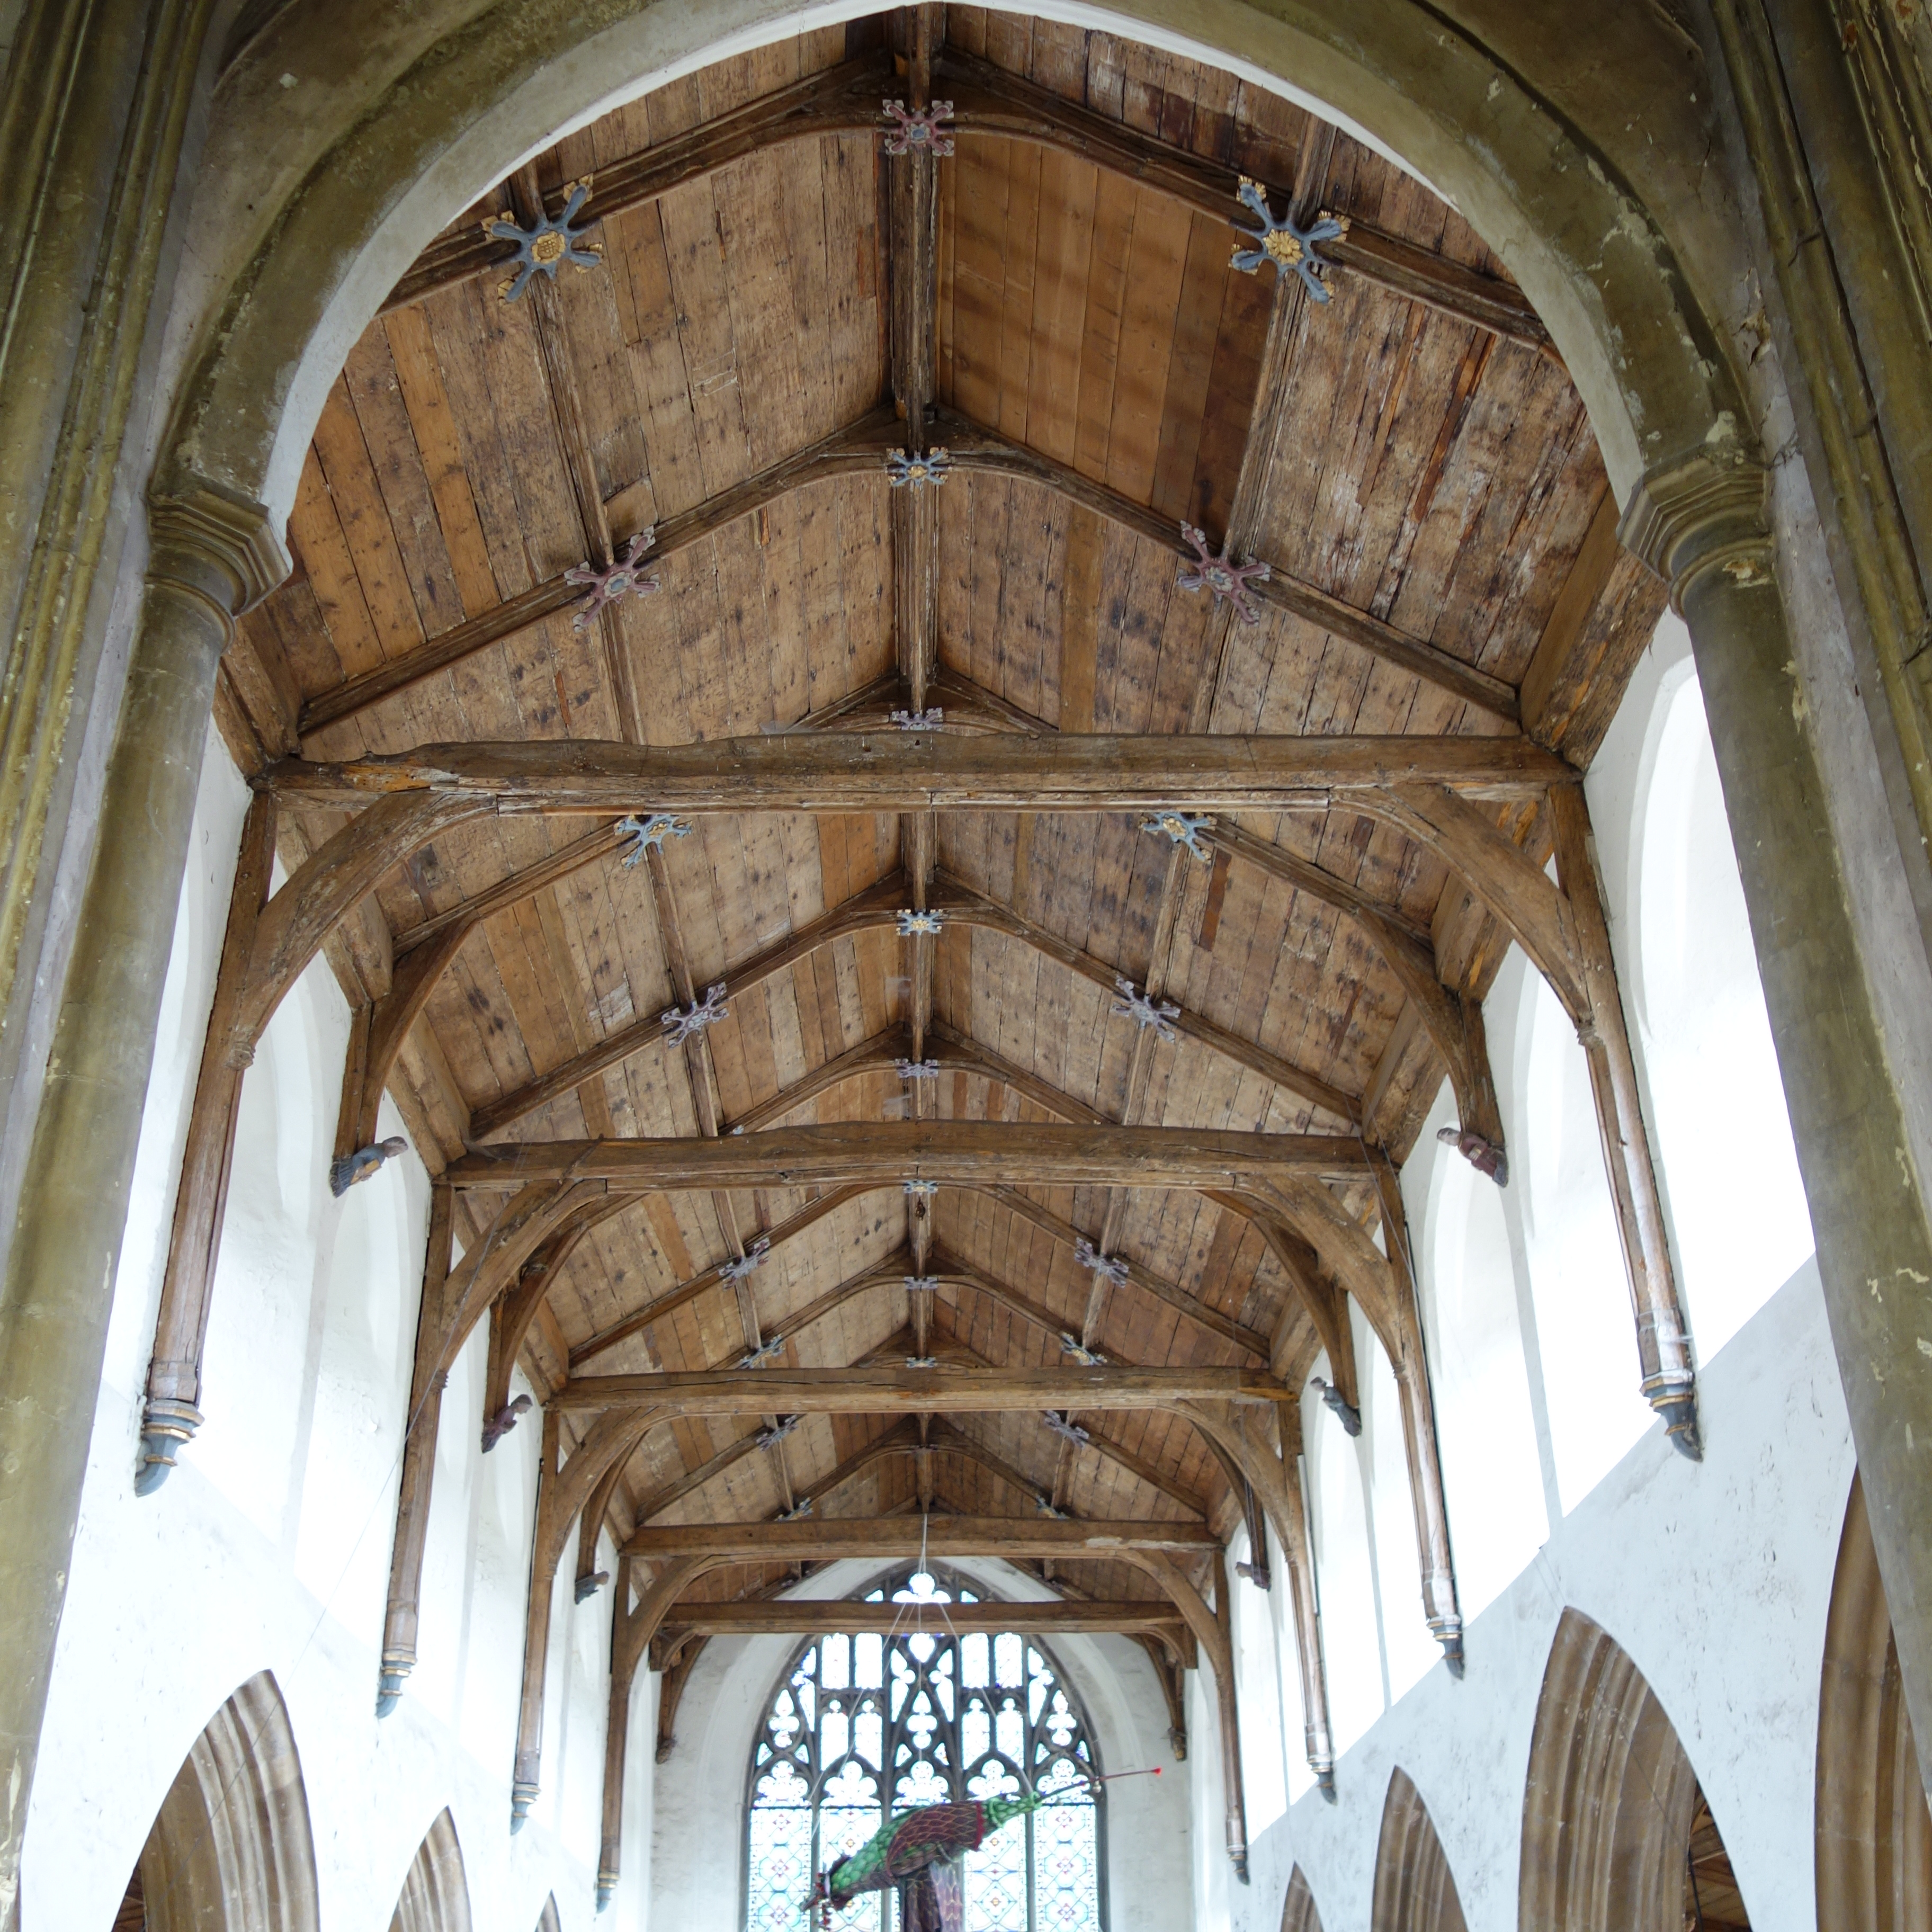 conference  norwich and the medieval parish church c 900  u2013 2017 the making of a fine city  june